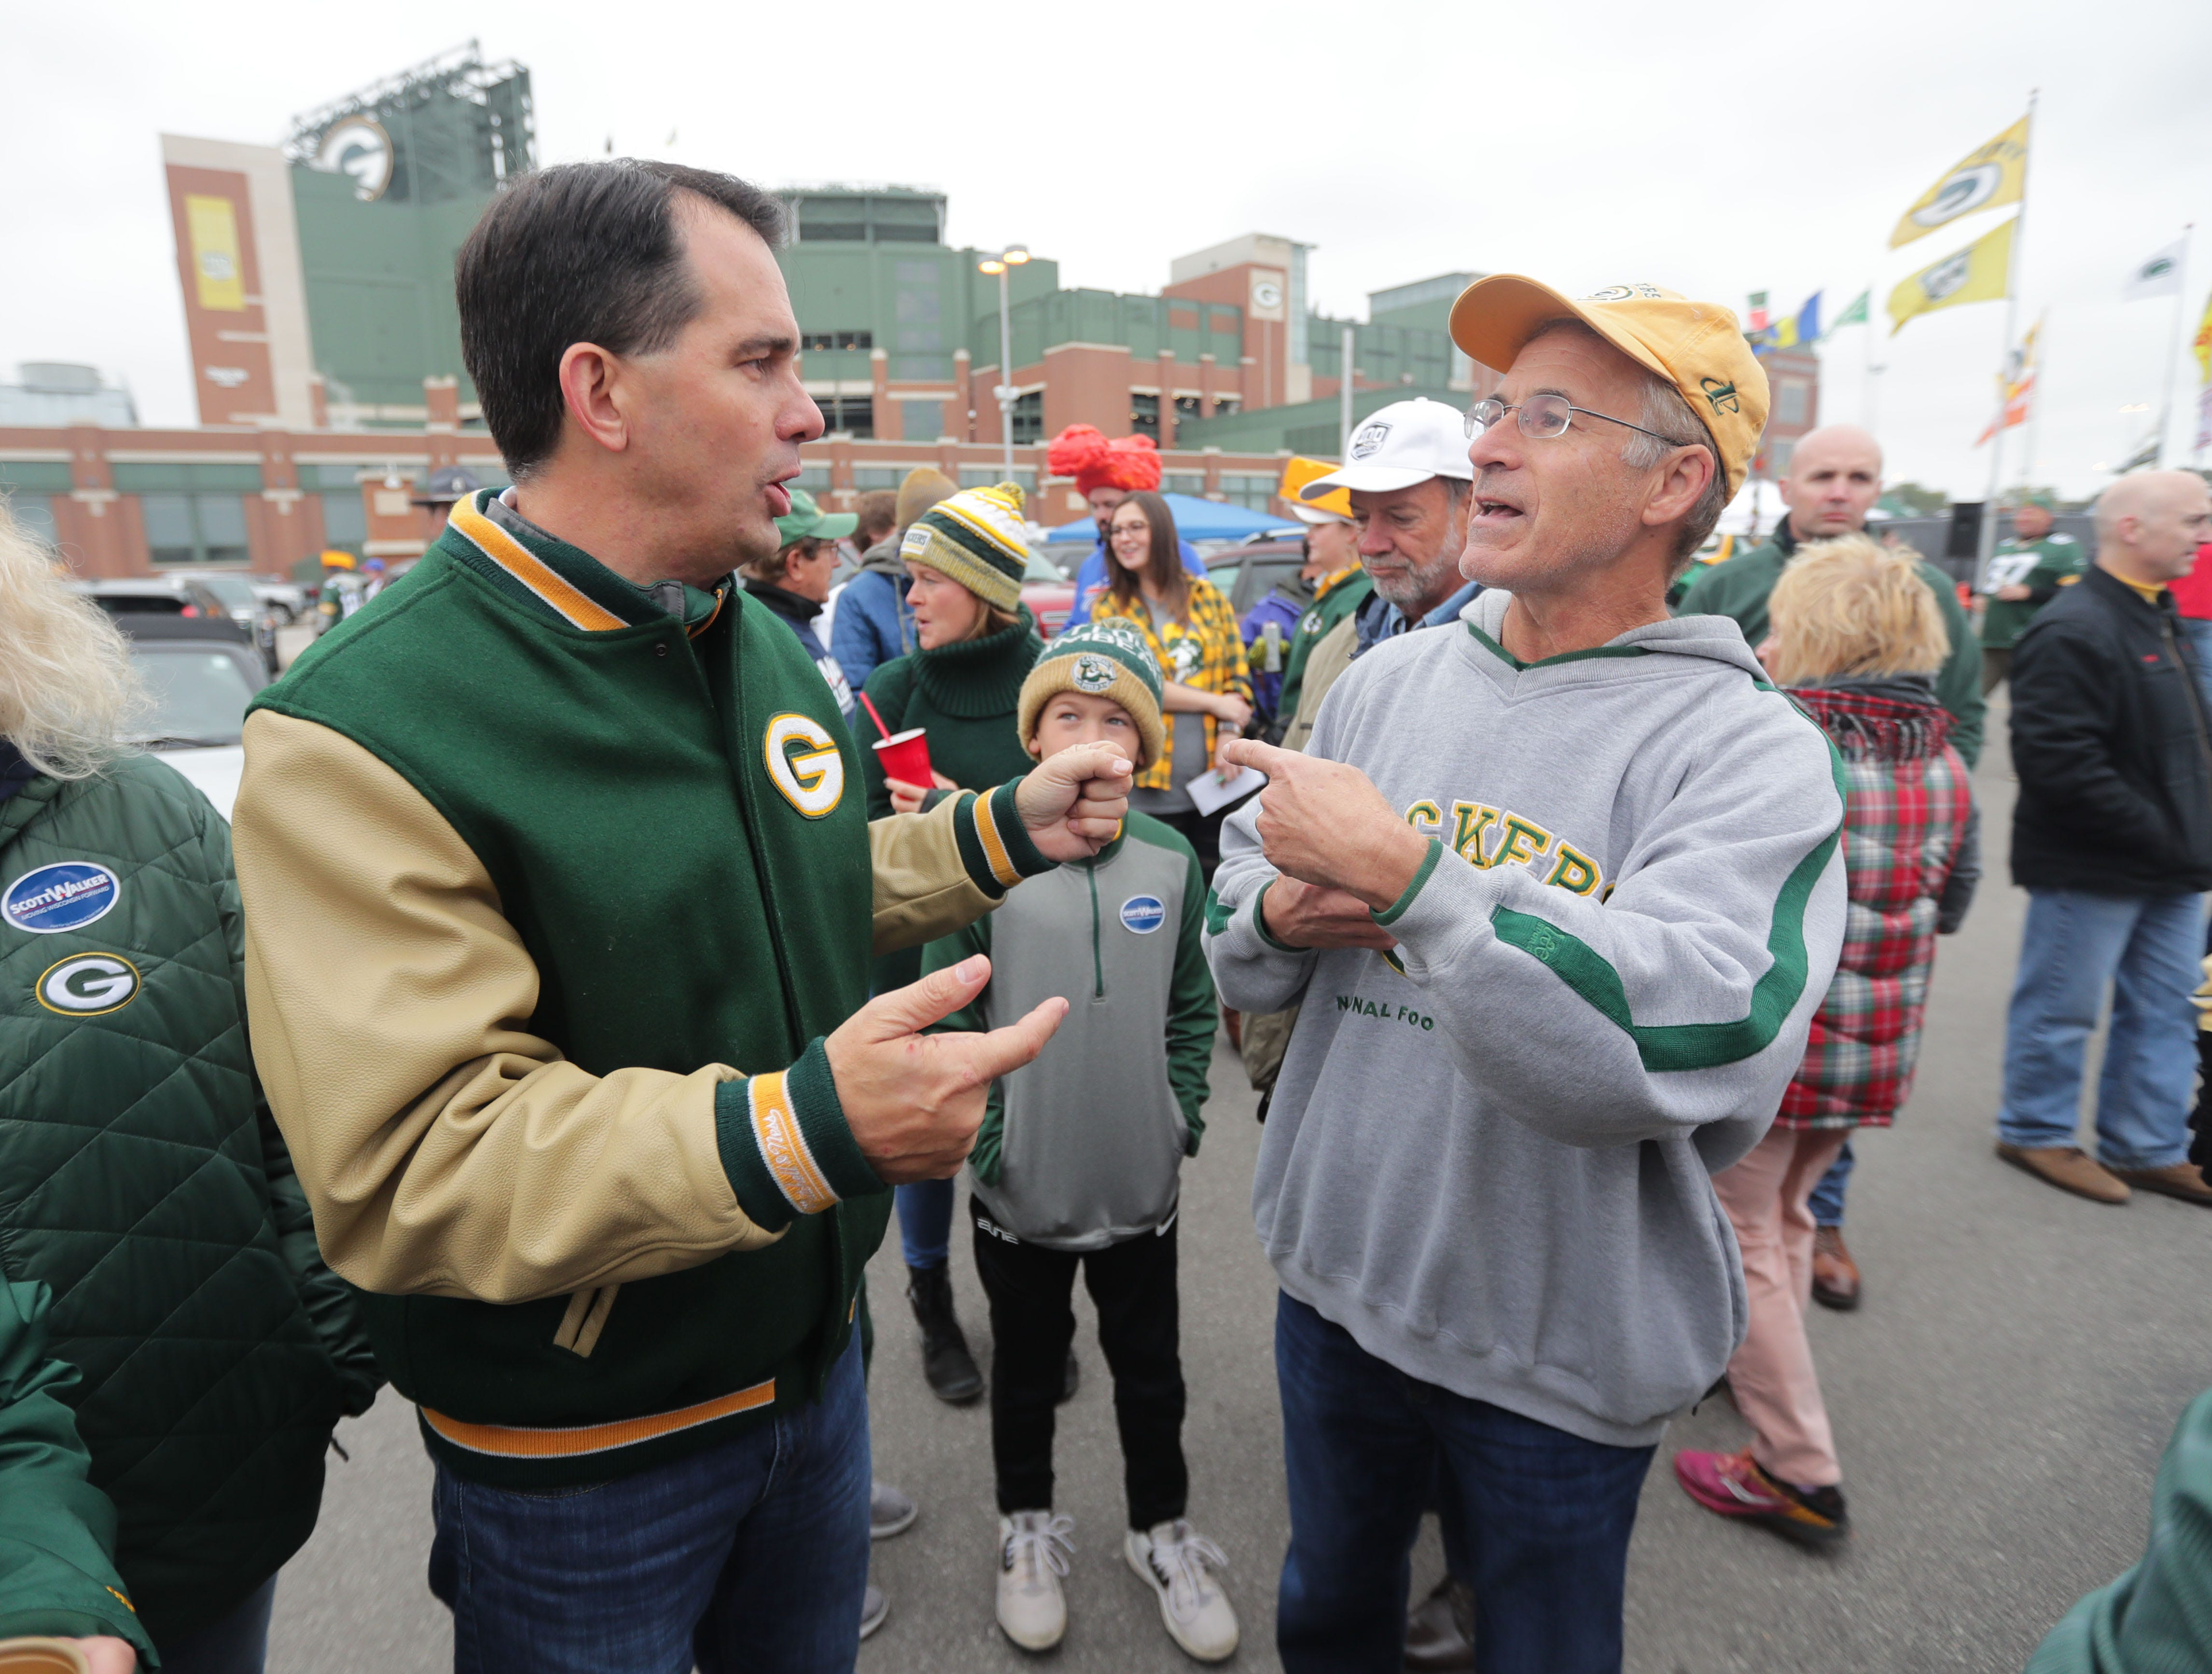 Gov. Scott Walker talks with Terrill Klett, of Atlanta before the Green Bay Packers game against the Buffalo Bills at Lambeau Field in Green Bay, Wis. on Sunday, September 30, 2018.